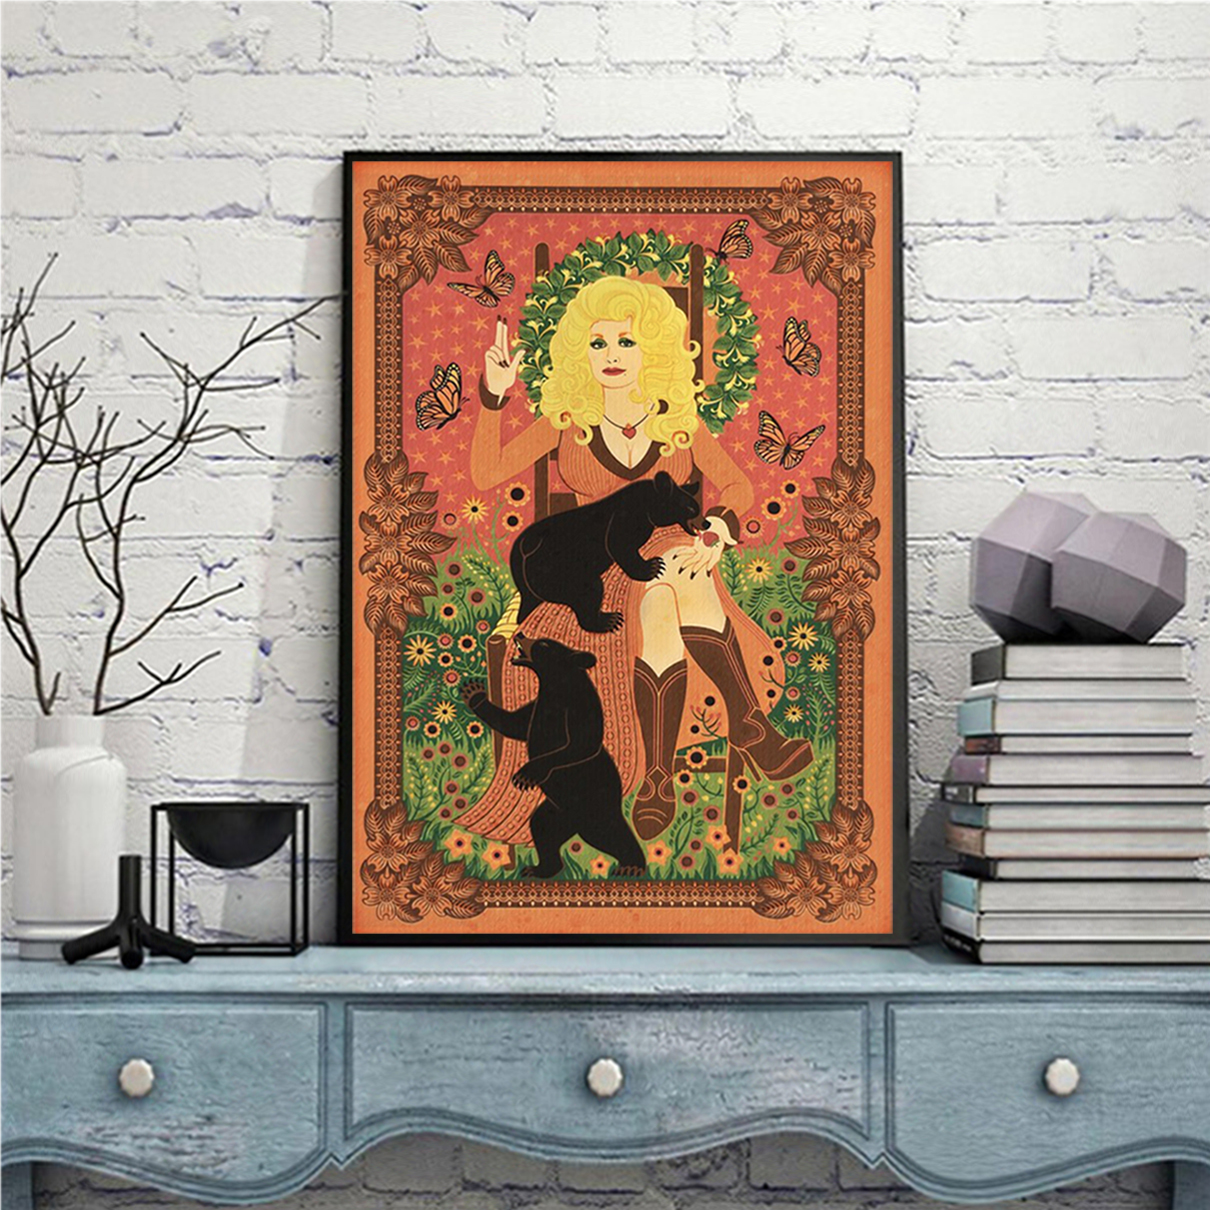 Dolly parton with bears and butterflies poster A1